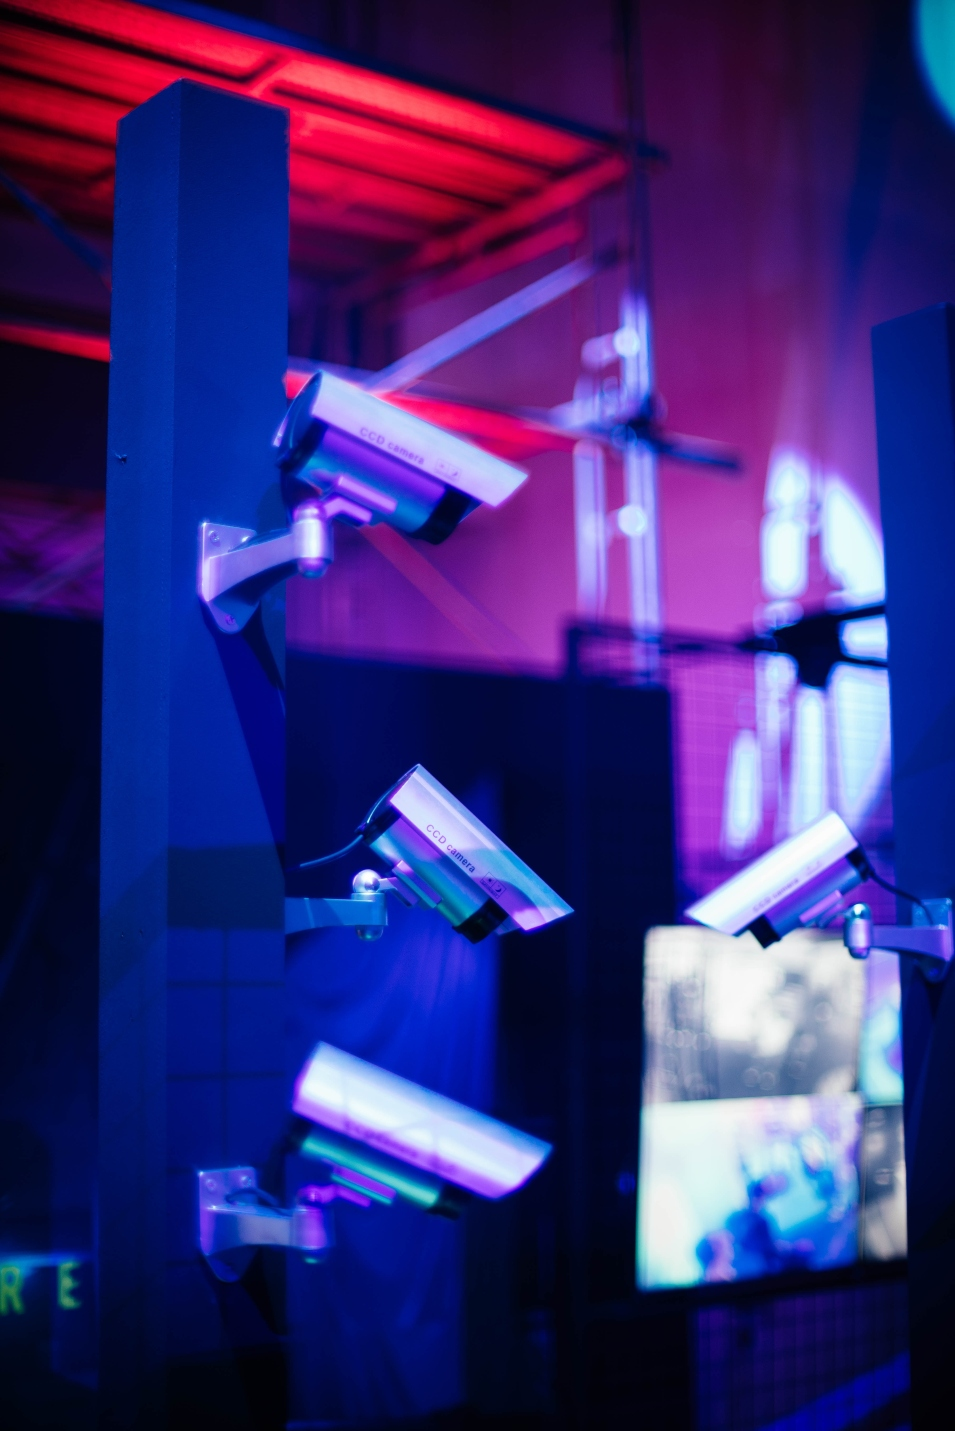 security-cameras-in-night-club